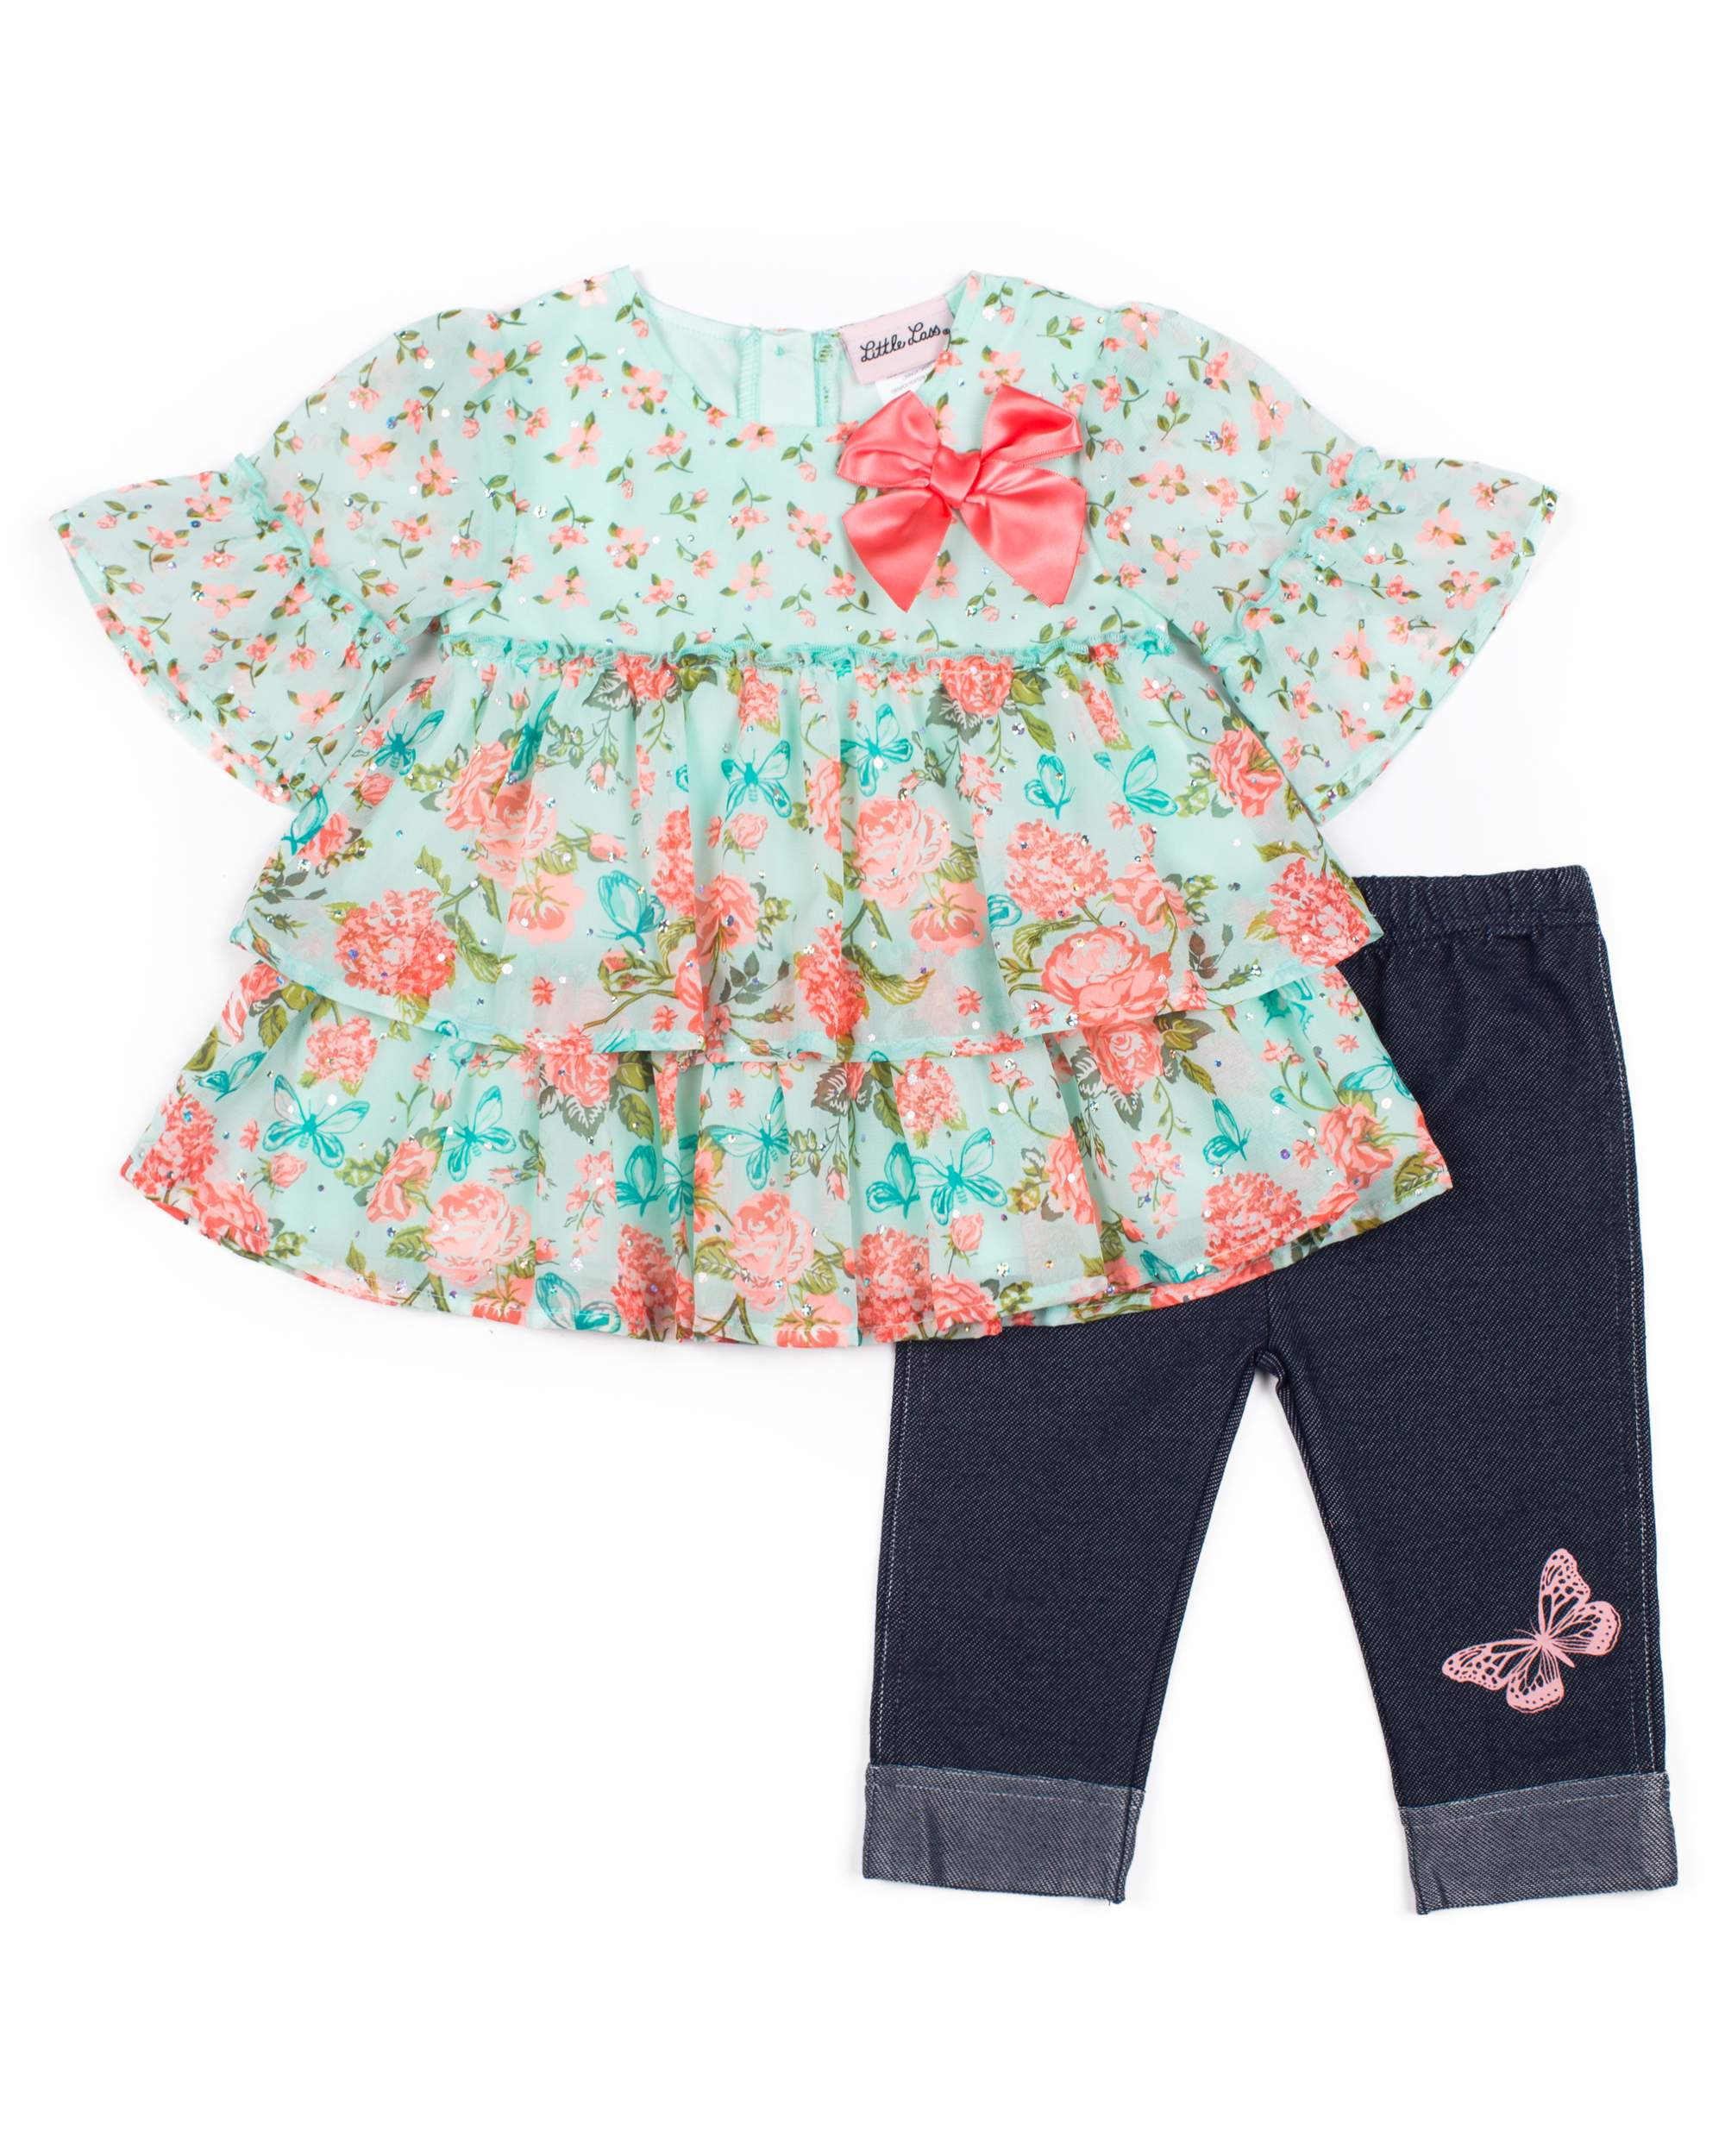 Short Sleeve Printed Chiffon Top with Bow & Capri, 2pc Outfit Set (Baby Girls & Toddler Girls)